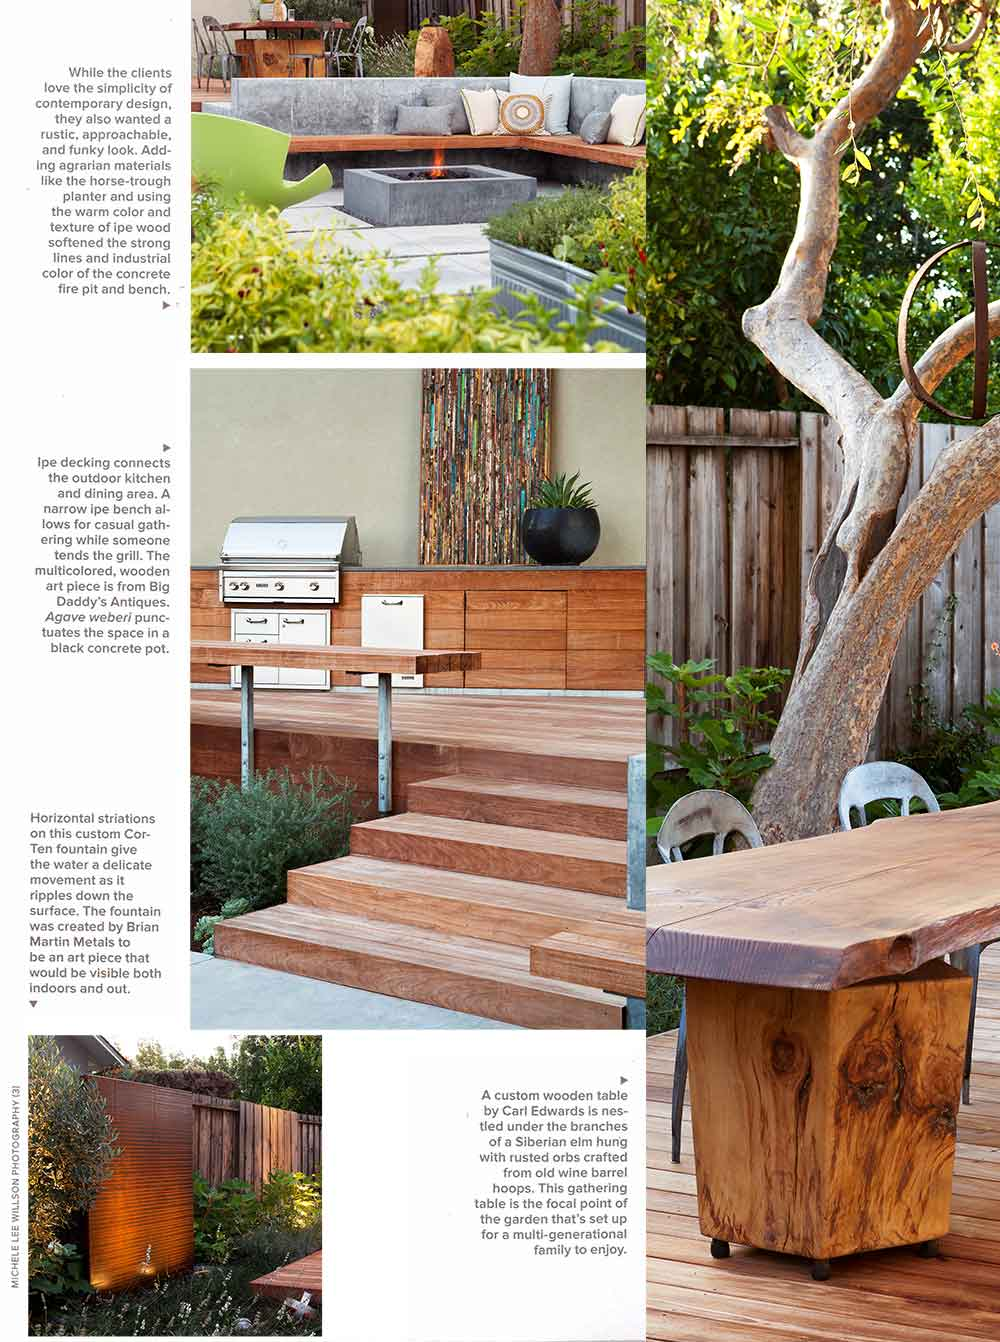 Garden Design features The Gathering Table, including the concrete firepit, corten fountain and wood table.